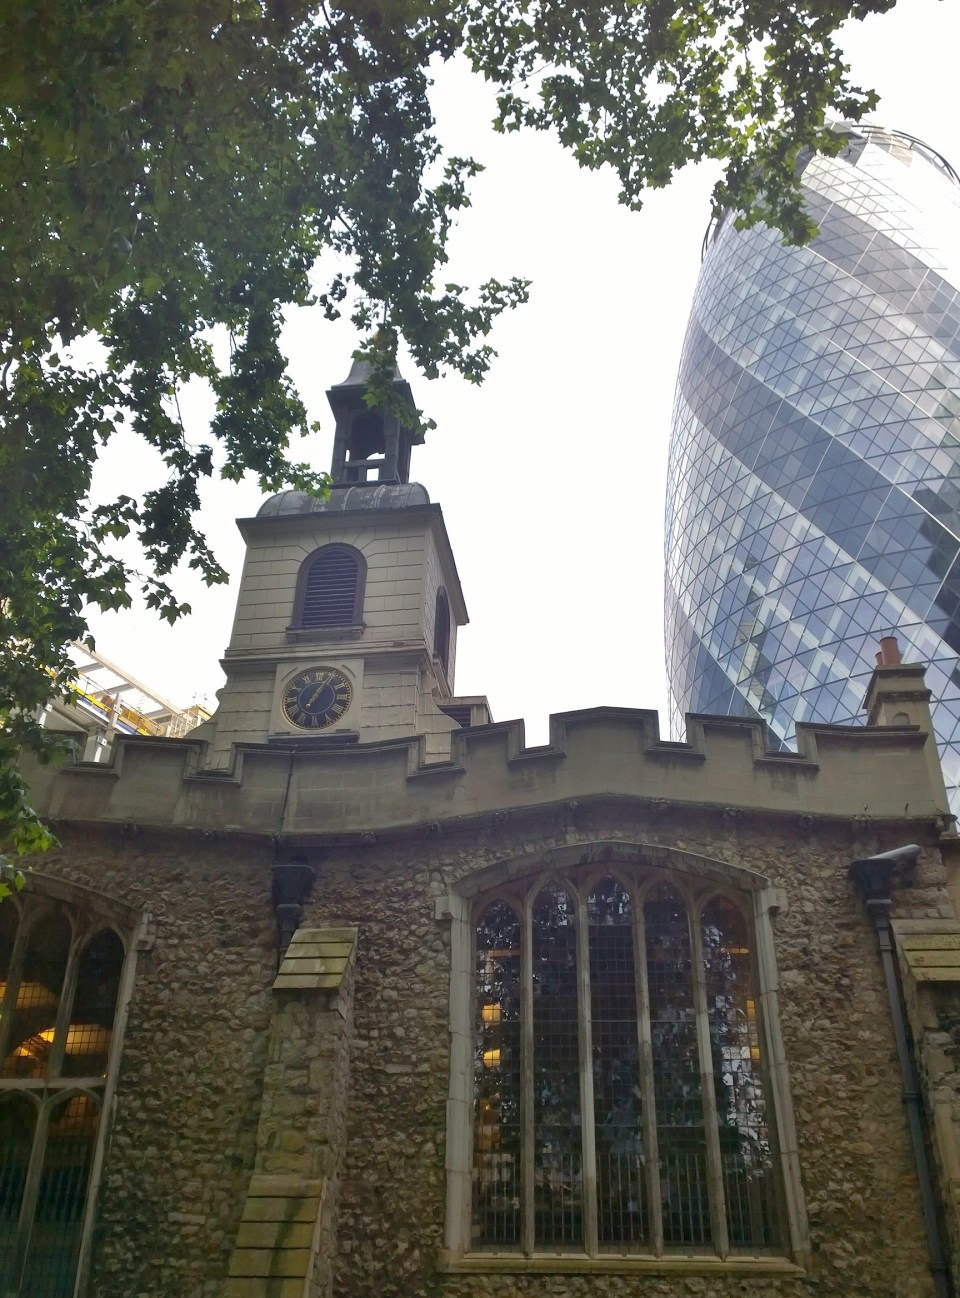 St Helens Bishopsgate with the Gherkin on St, Mary Axe in the background.